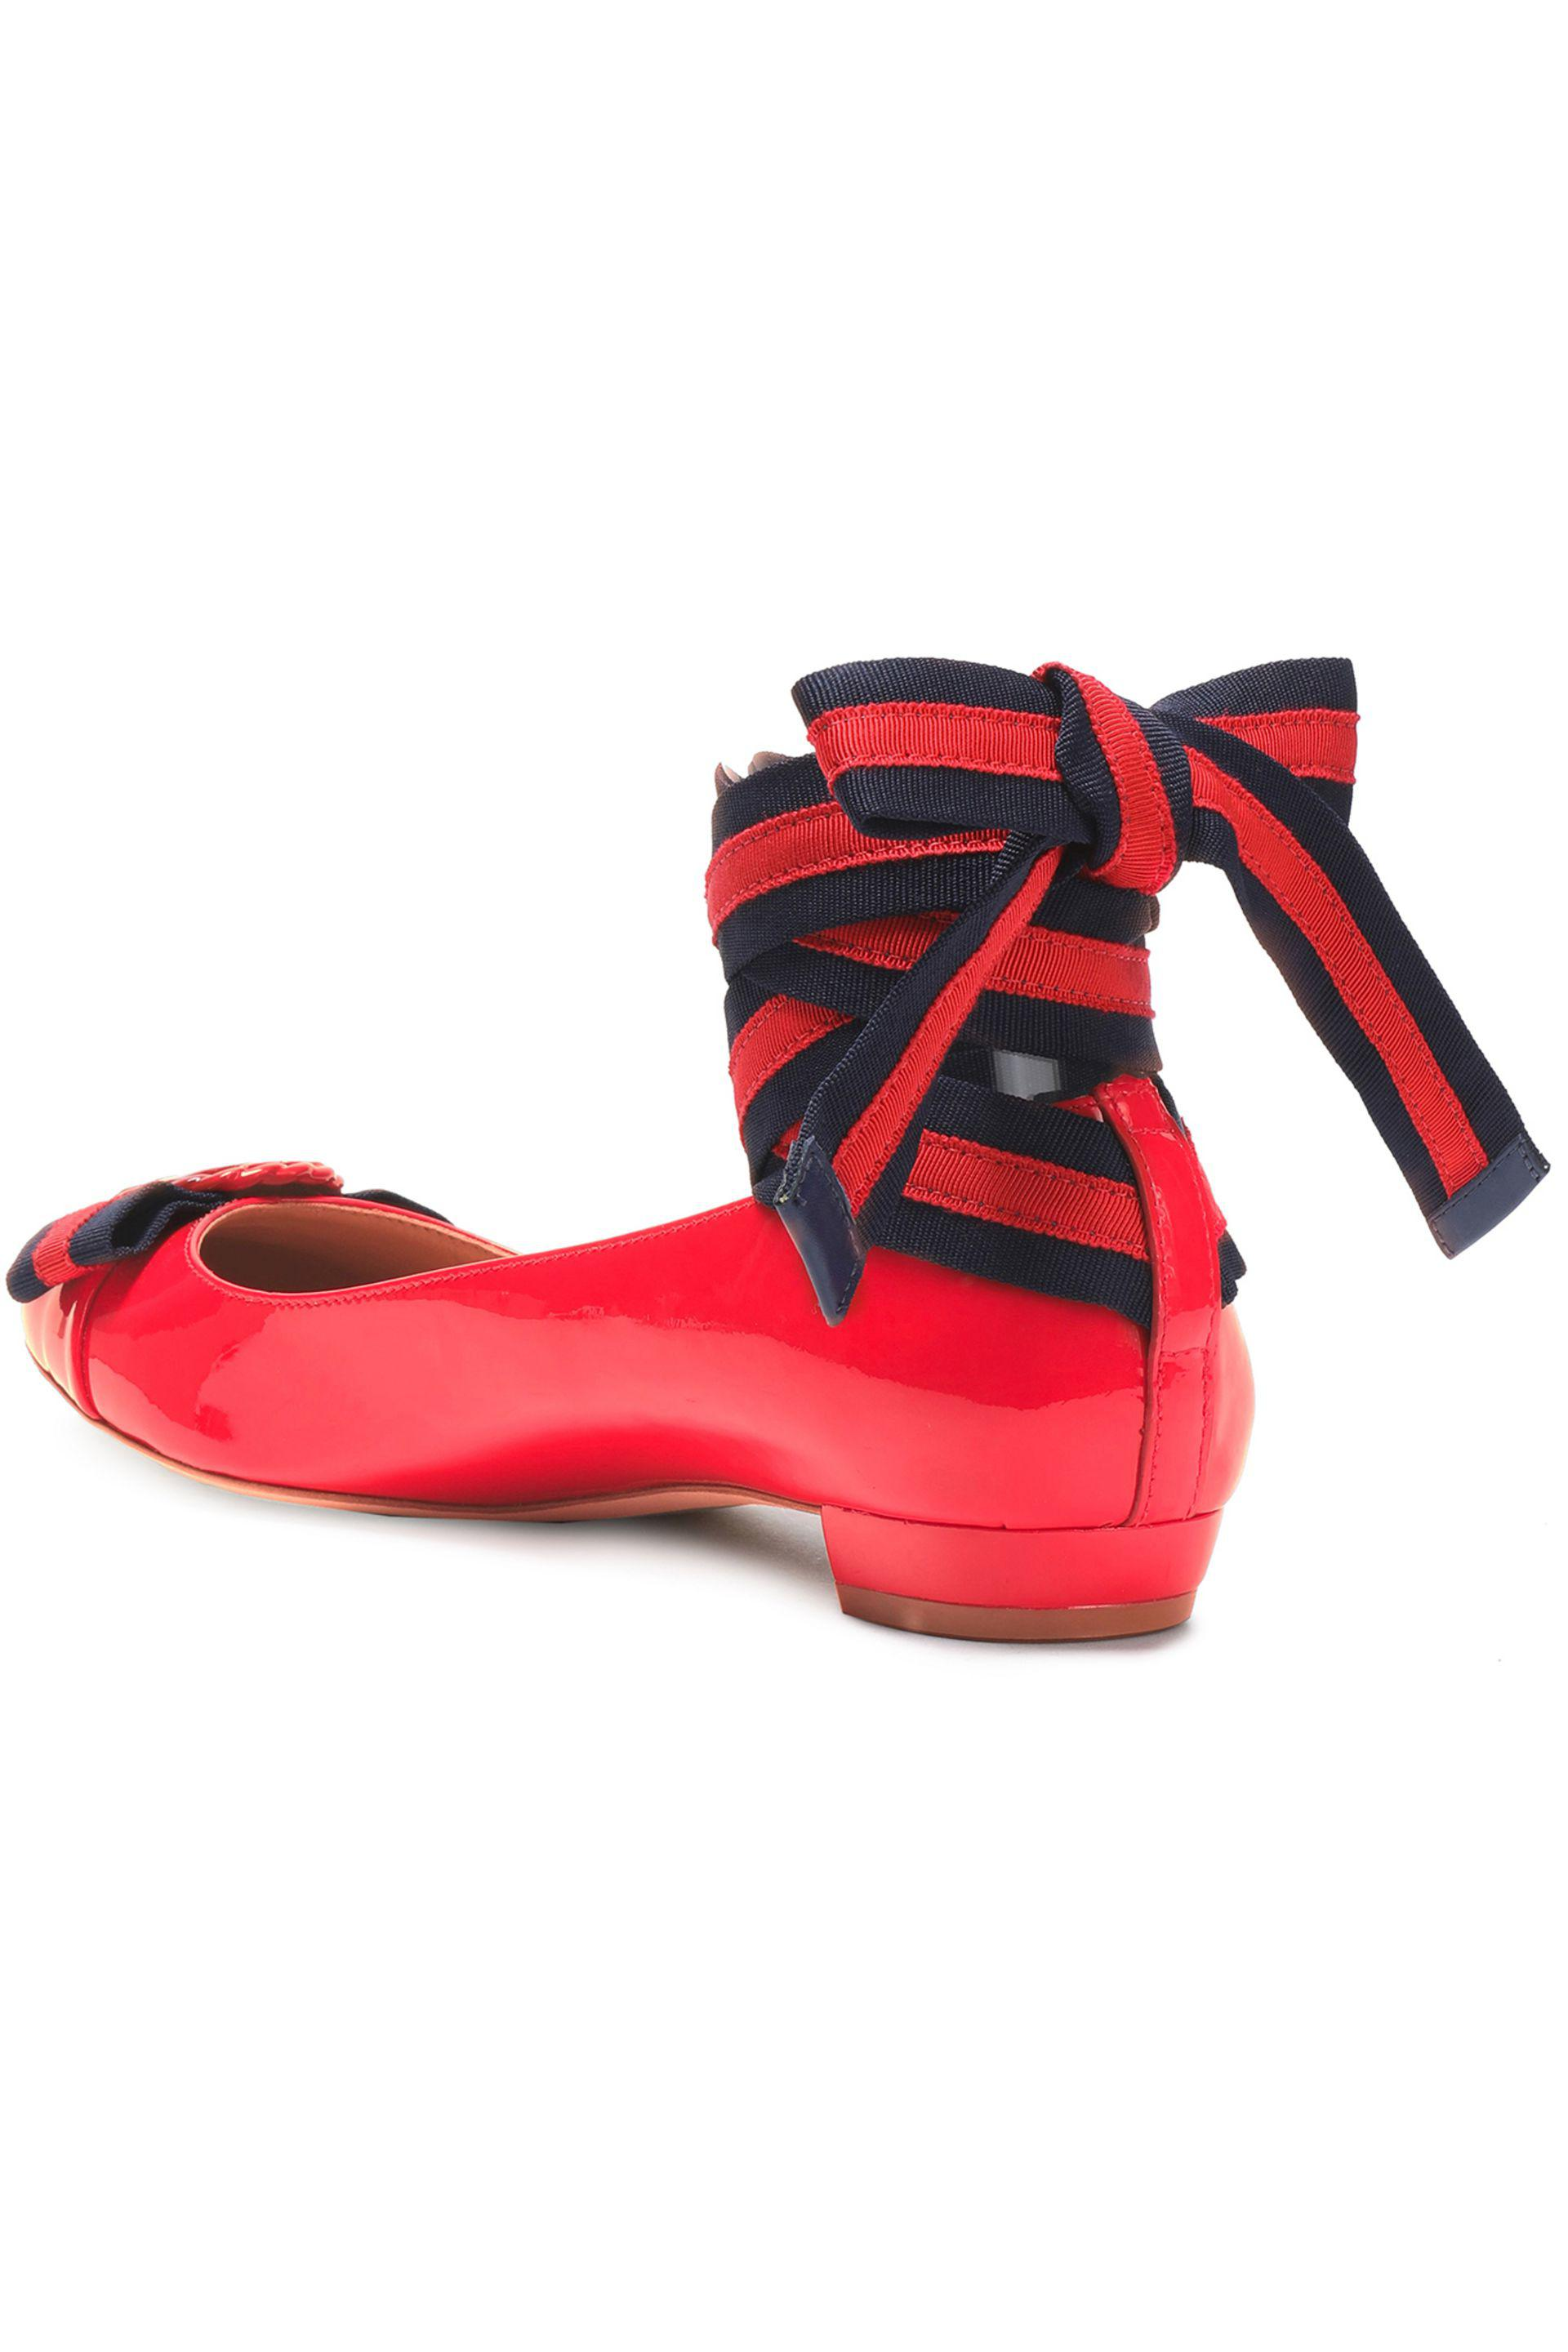 806b125a6f1d2e ... low price tory burch embellished patent leather ballet flats in red lyst  774da ca9b8